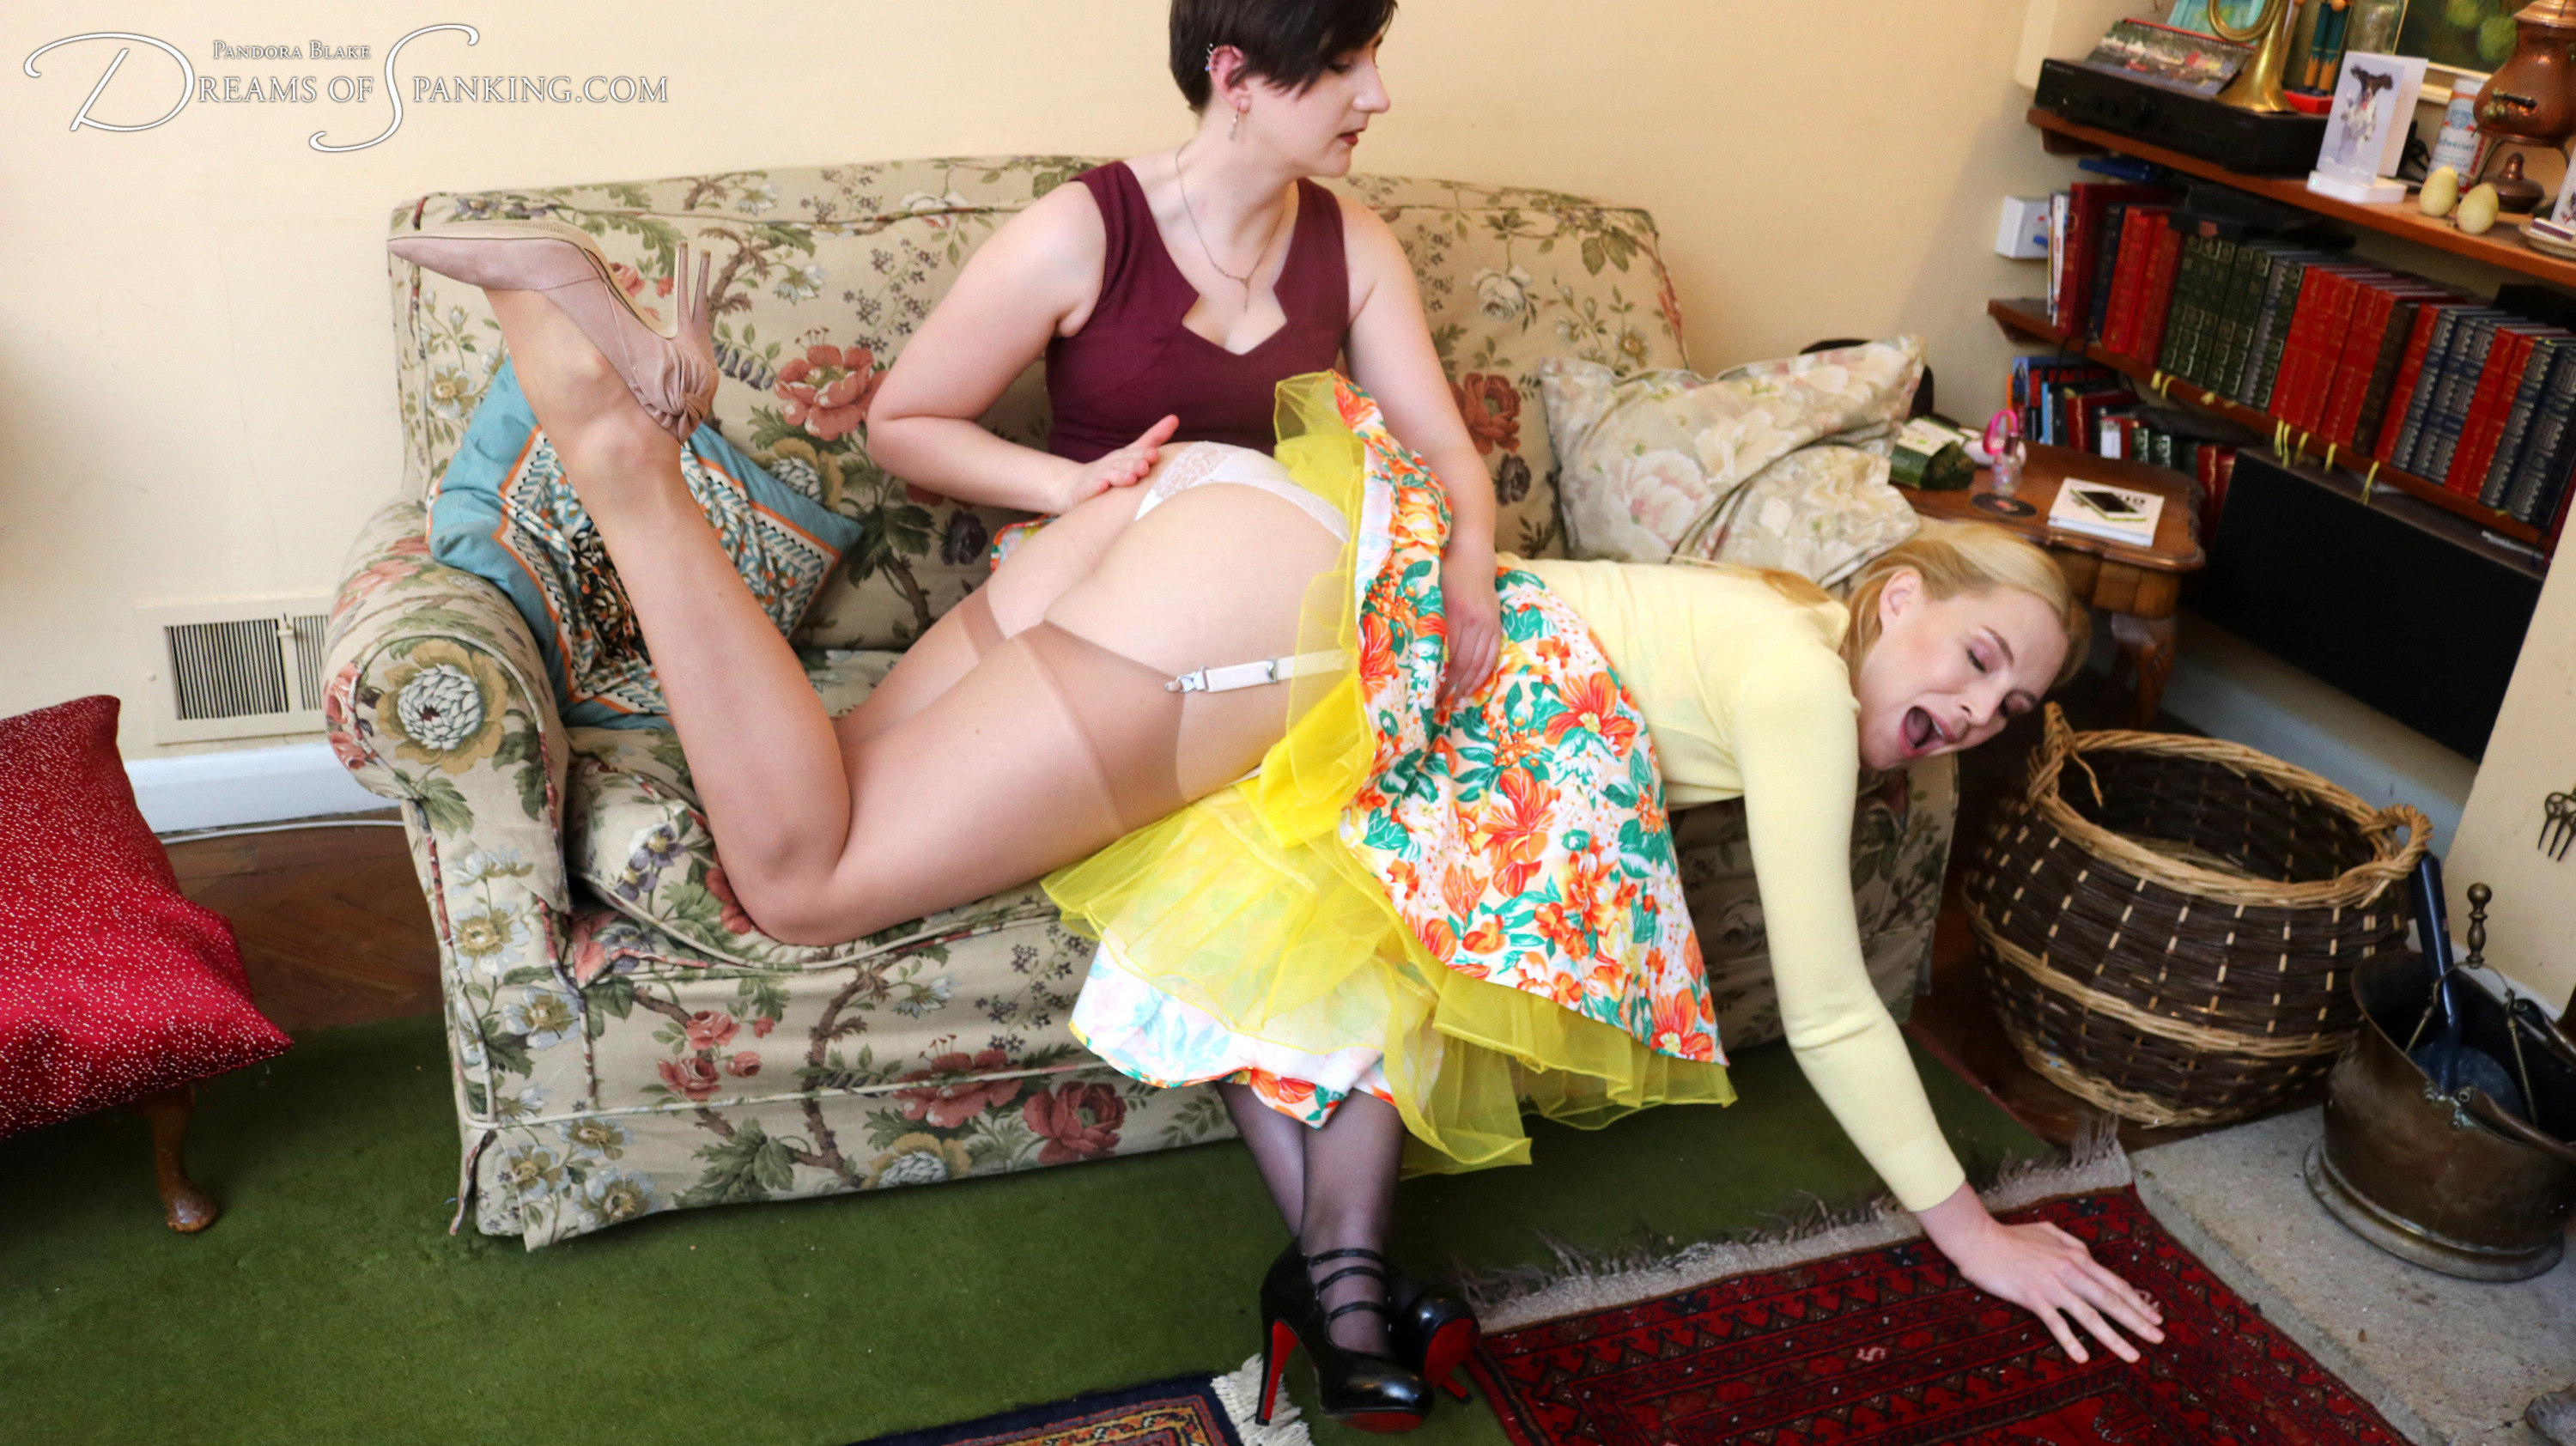 Amelia Jane Rutherford over Pandora Blake's knee for a spanking at Dreams of Spanking